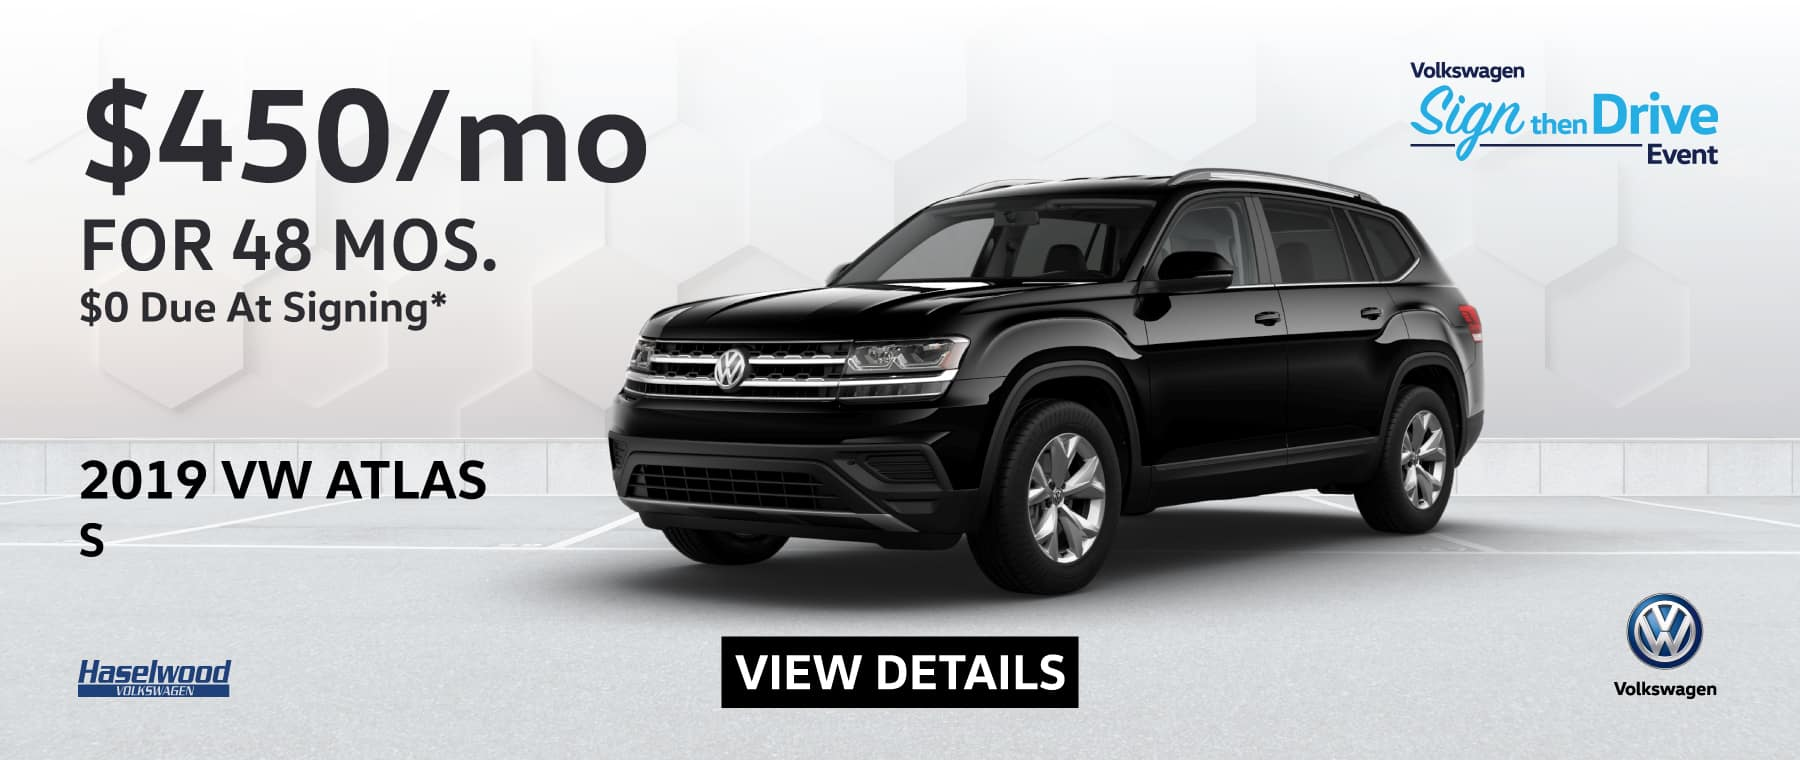 2019 Volkswagen Atlas S  $450/mo. for 48 months $0 Due at Signing    * Offer valid on 2019 Volkswagen Atlas S. $450 per mo. for 48 months. Lease with $0 due at signing; includes a $595 acquisition fee, lease through Volkswagen Credit. No security deposit required. Valid on VIN: 1V2GR2CA9KC607633.For highly qualified customers on approved top tier credit through Volkswagen Credit. Lessee responsible for maintenance, excessive wear/tear and 20¢/mi over 10K mi/yr. Excludes state and local taxes, tags, registration and title, insurance and dealer charges. Subject to credit approval. 48 monthly payments required. Monthly lease payment based on MSRP of $36,010 and destination charges less a suggested dealer contribution resulting in a Gross capitalized cost of $35,052. Cap cost reduction: $0. A negotiable dealer documentary service fee of up to $150 may be added to the sale price or capitalized cost. See dealer for complete details and restrictions. 6 years/72,000 miles (whichever occurs first). New Vehicle Limited Warranty on MY2018 and newer VW vehicles, excluding e-Golf. See owner's literature or dealer for warranty exclusions and limitations. Exp. 12/1/2019.